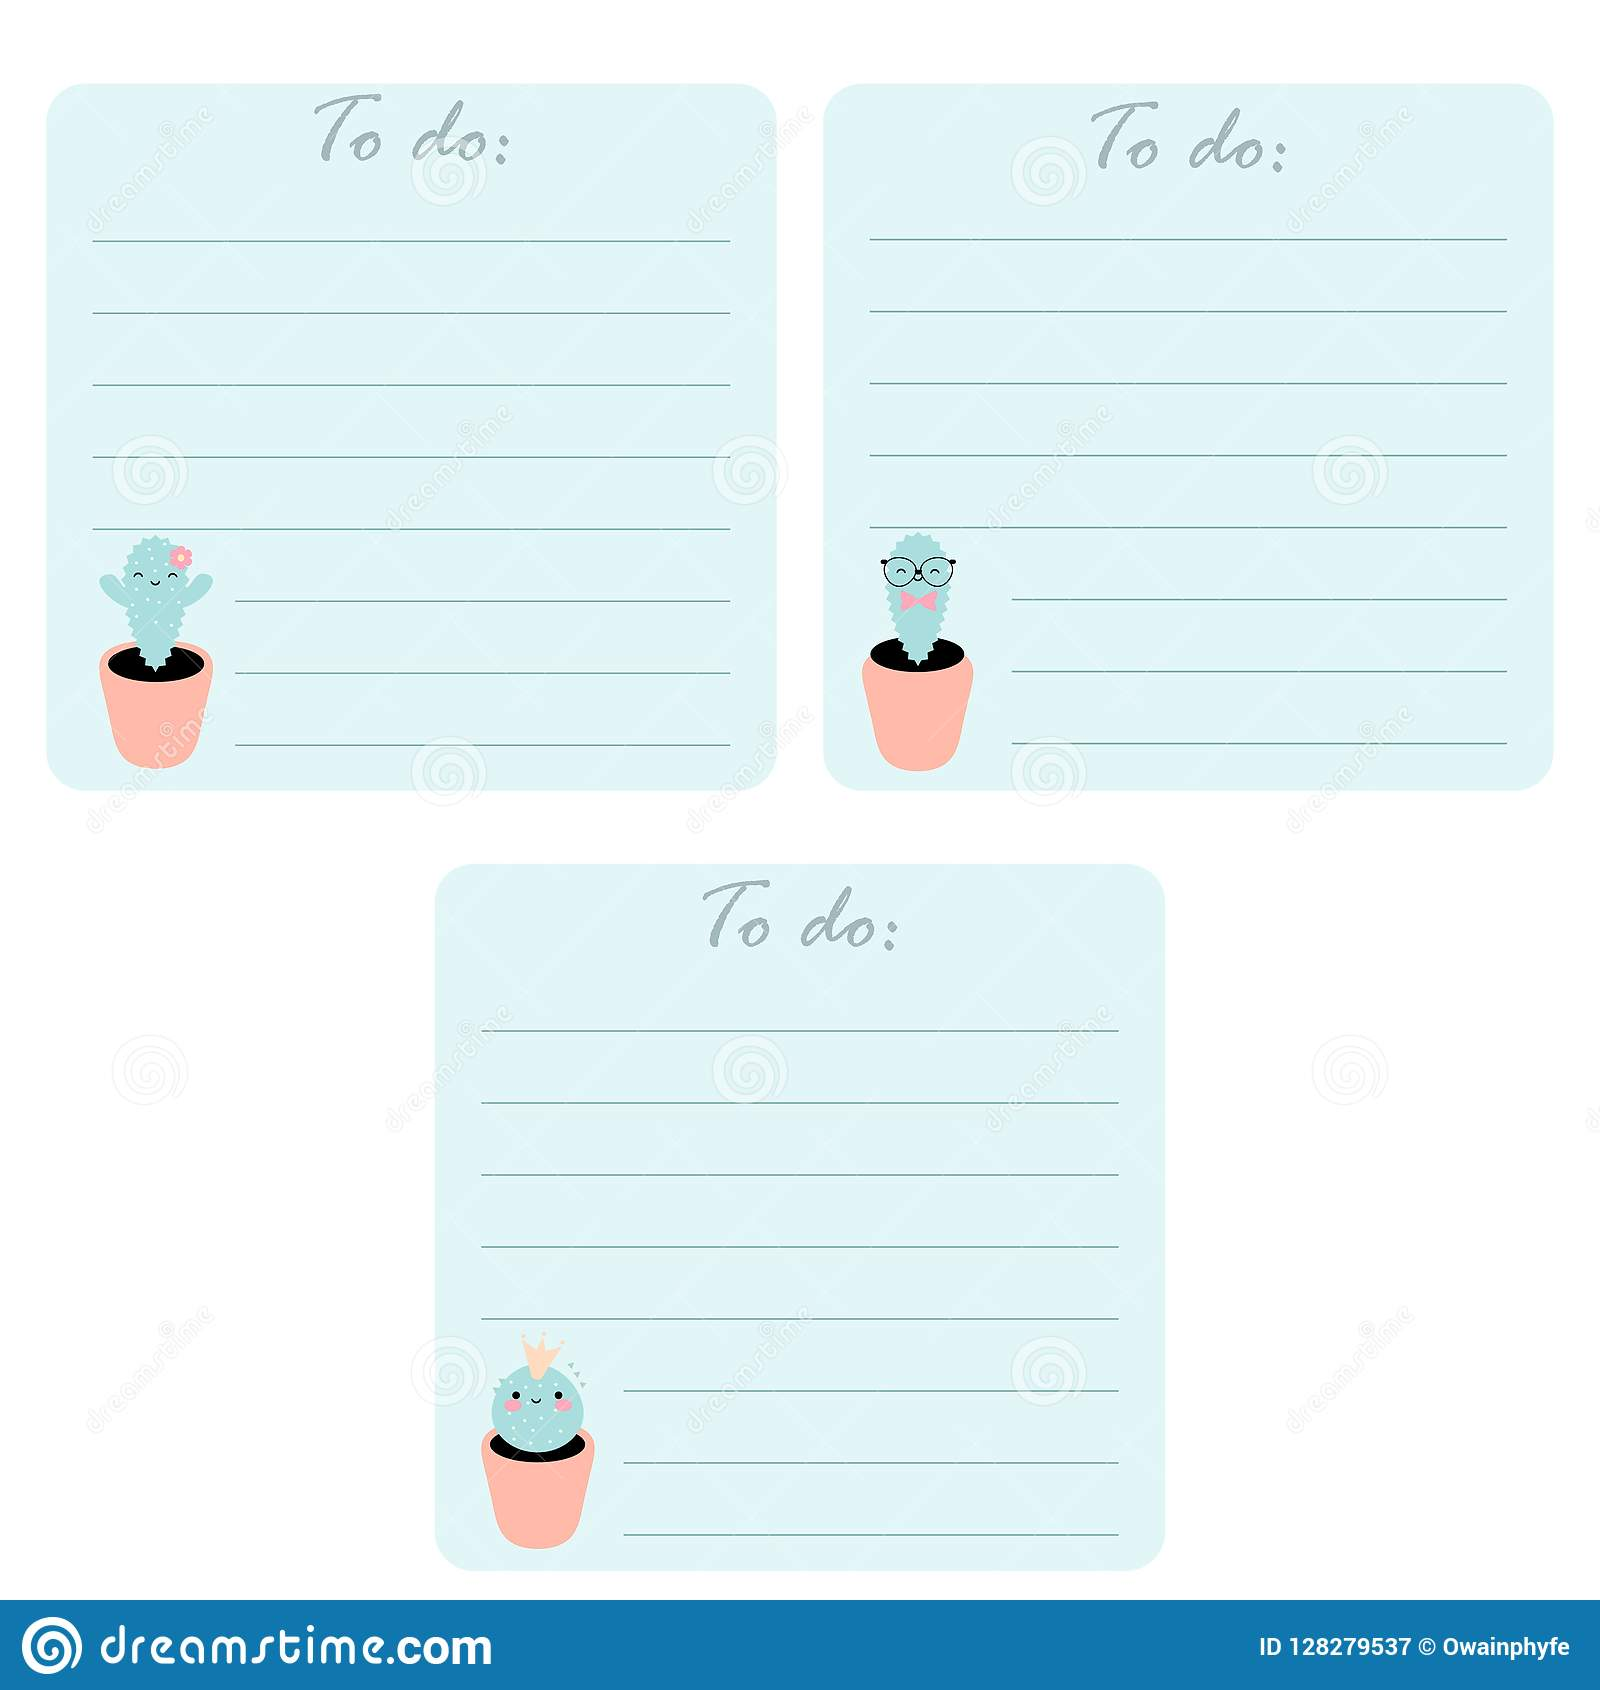 photo regarding Cute Printable to Do List identified as Fixed Of 3 Printable Toward Do Lists With Lovely Kawaii Cacti. Inventory